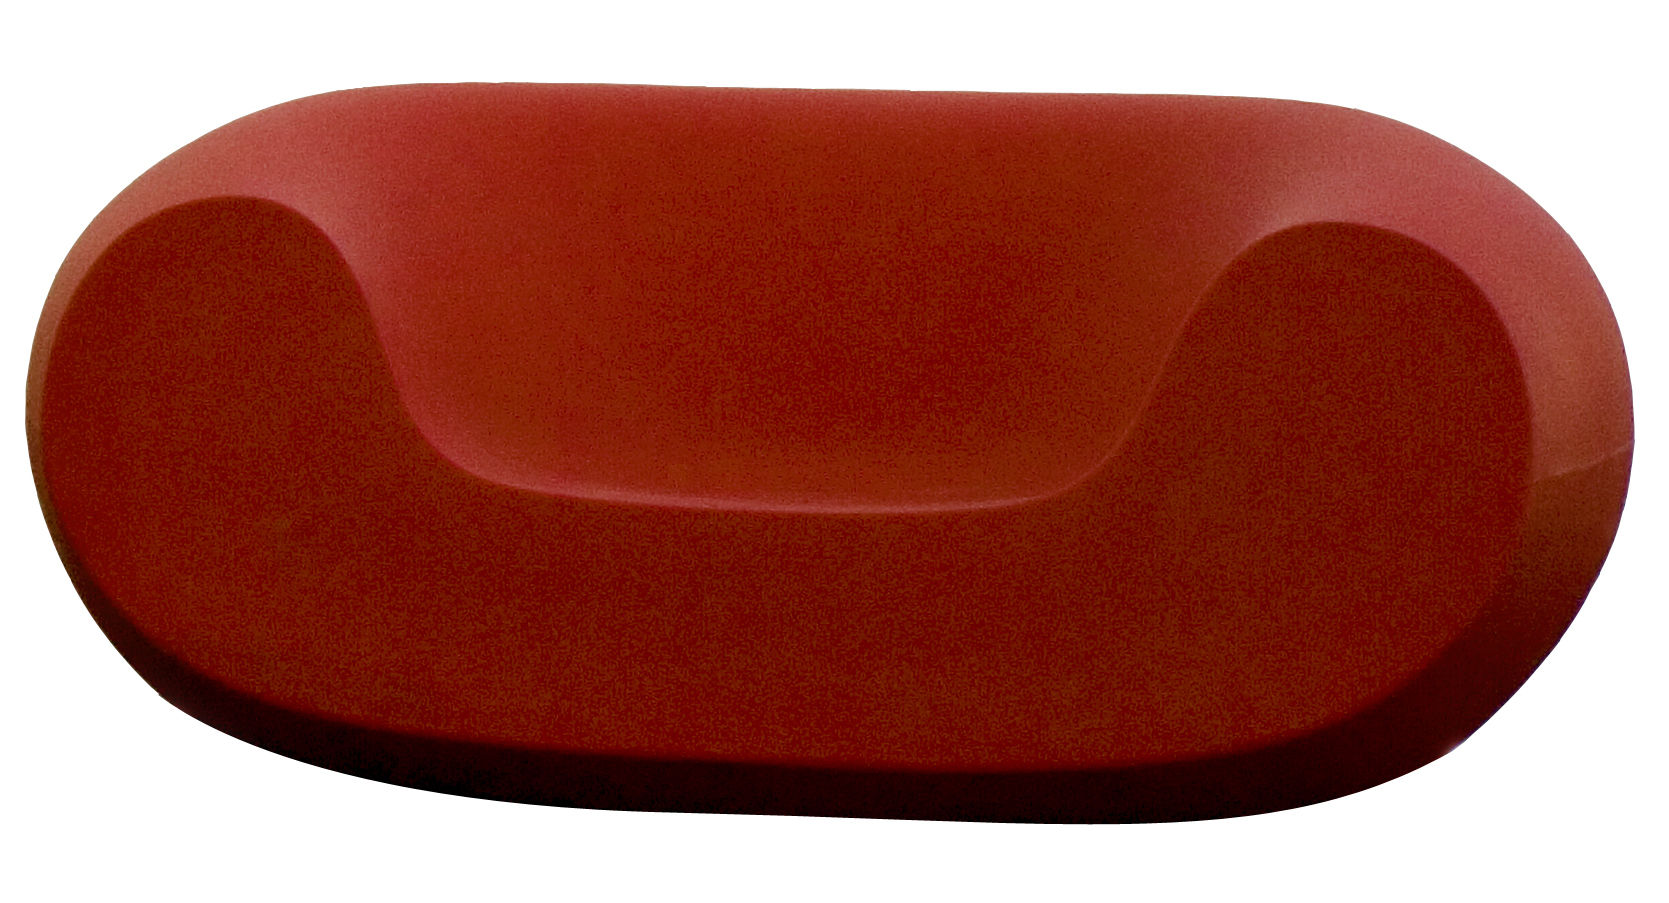 Mobilier - Mobilier Ados - Fauteuil bas Chubby - Slide - Rouge - polyéthène recyclable